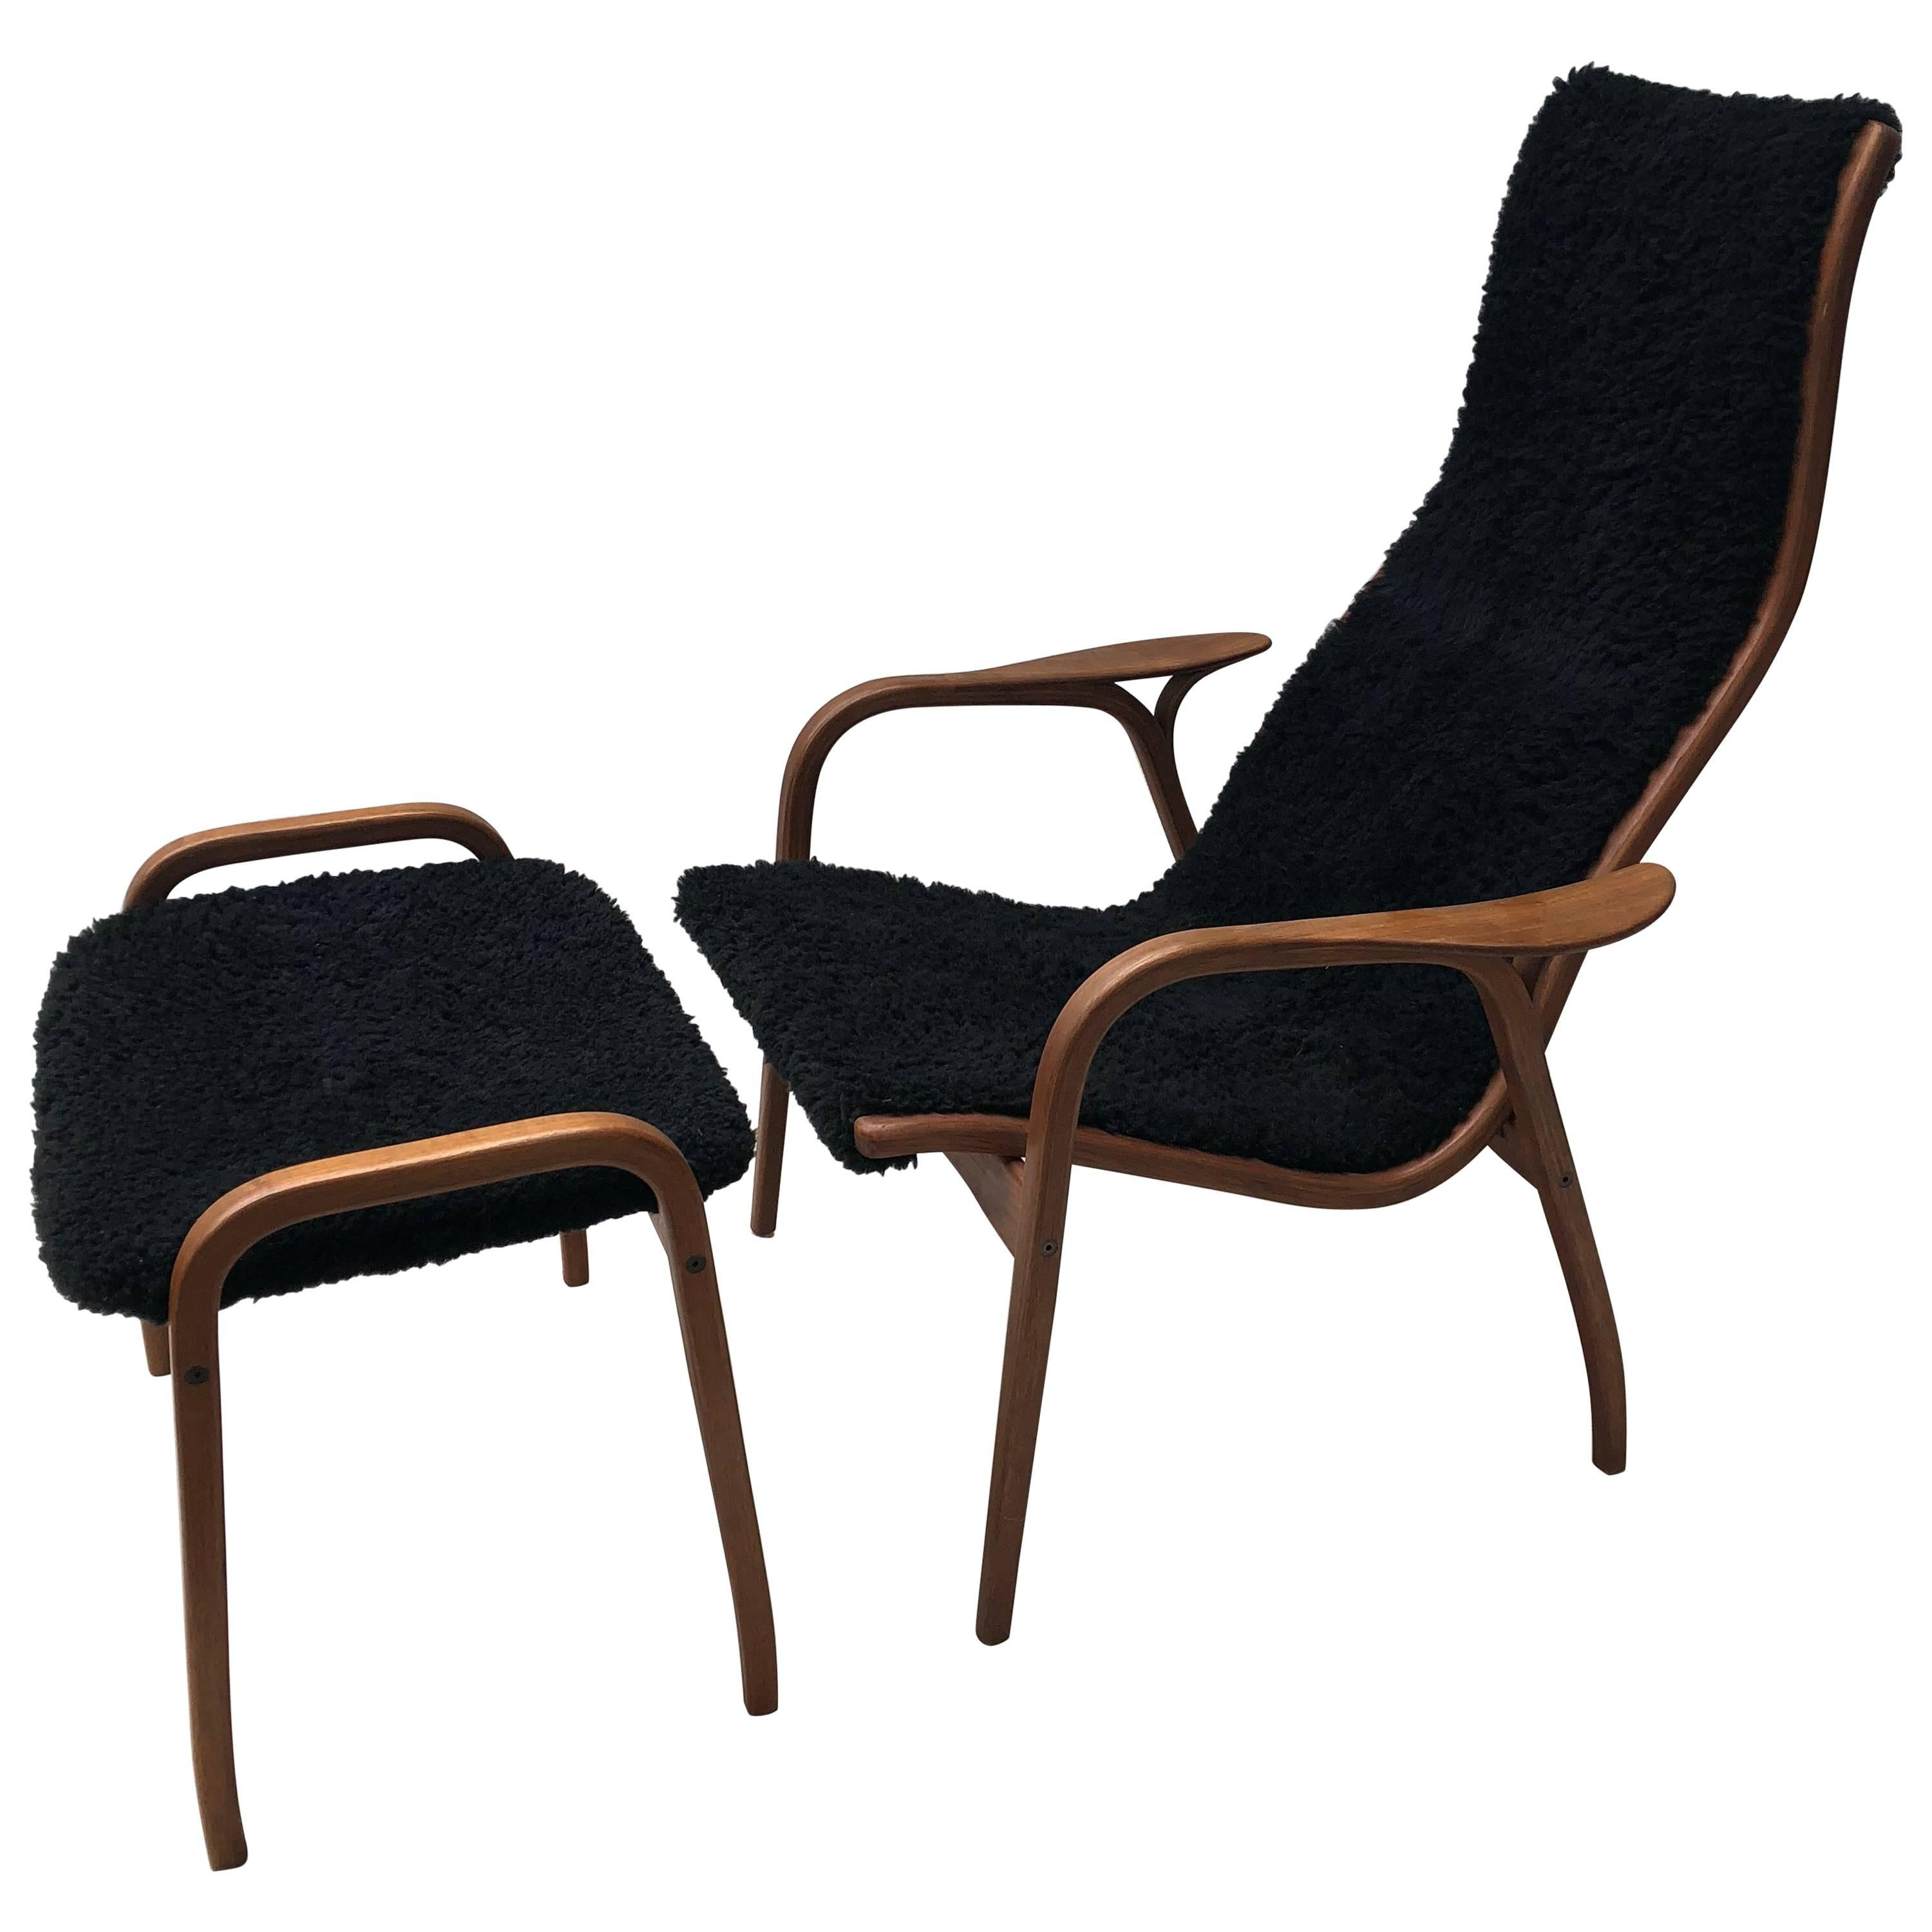 Superb Lamino Chair And Ottoman By Yngve Ekström For Swedese For Sale